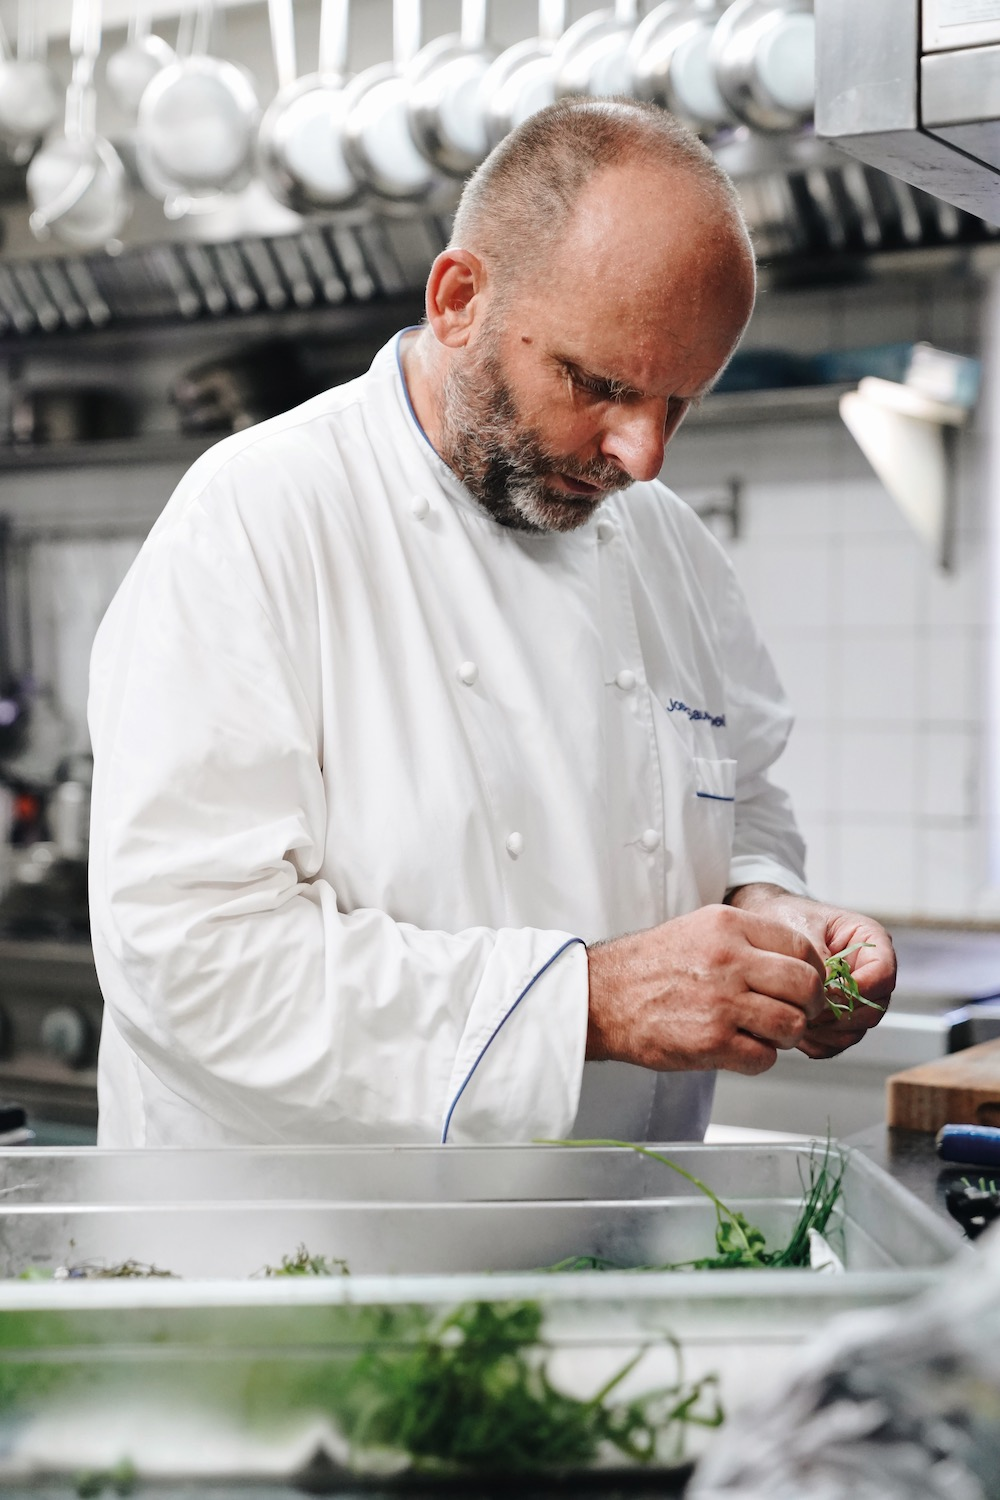 Josef Sauerschell cooking